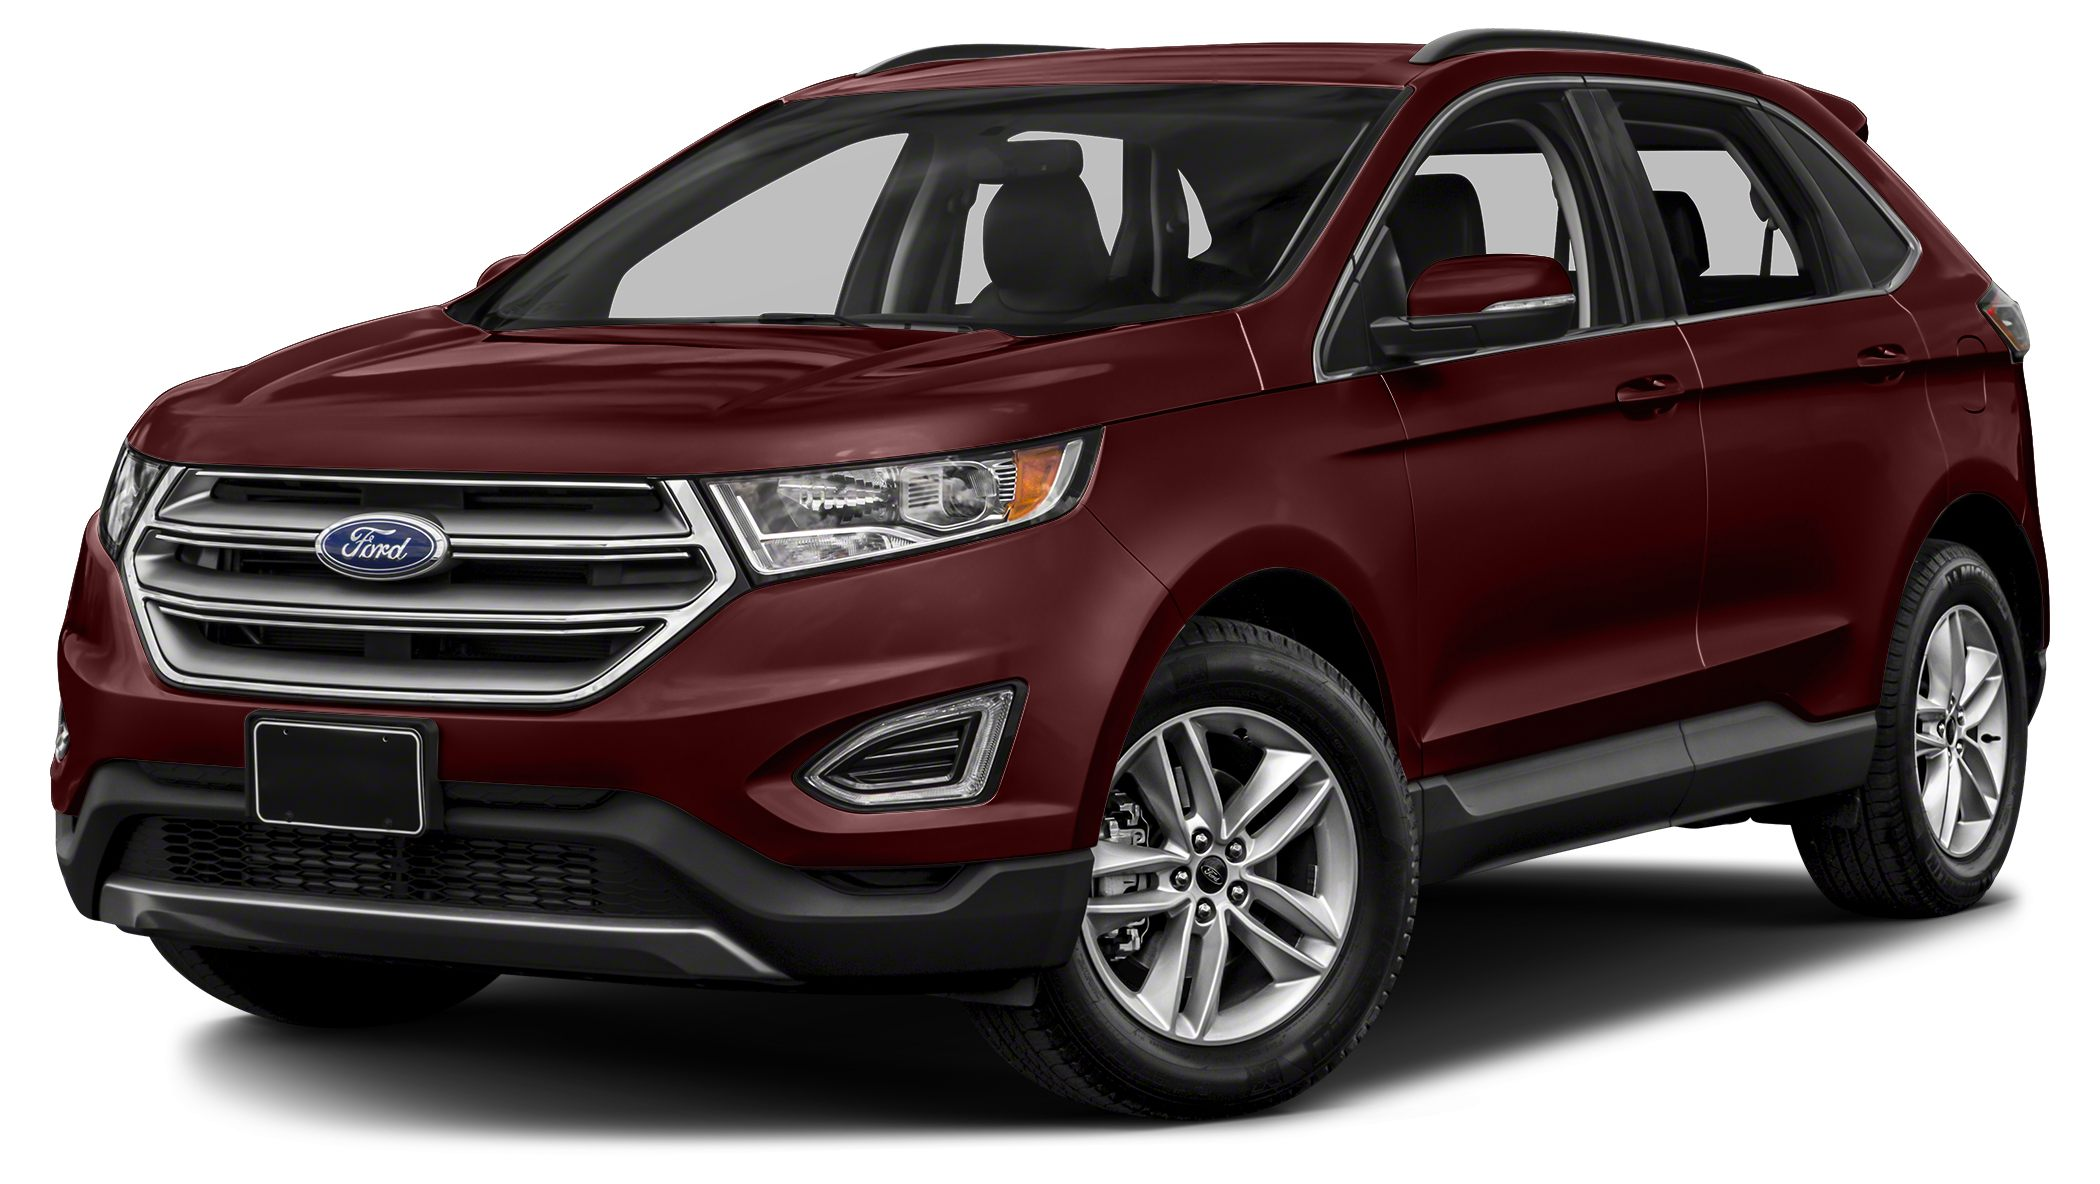 2016 Ford Edge SE The all new 2016 Ford Edge is taking crossovers to a whole new level The SE SE